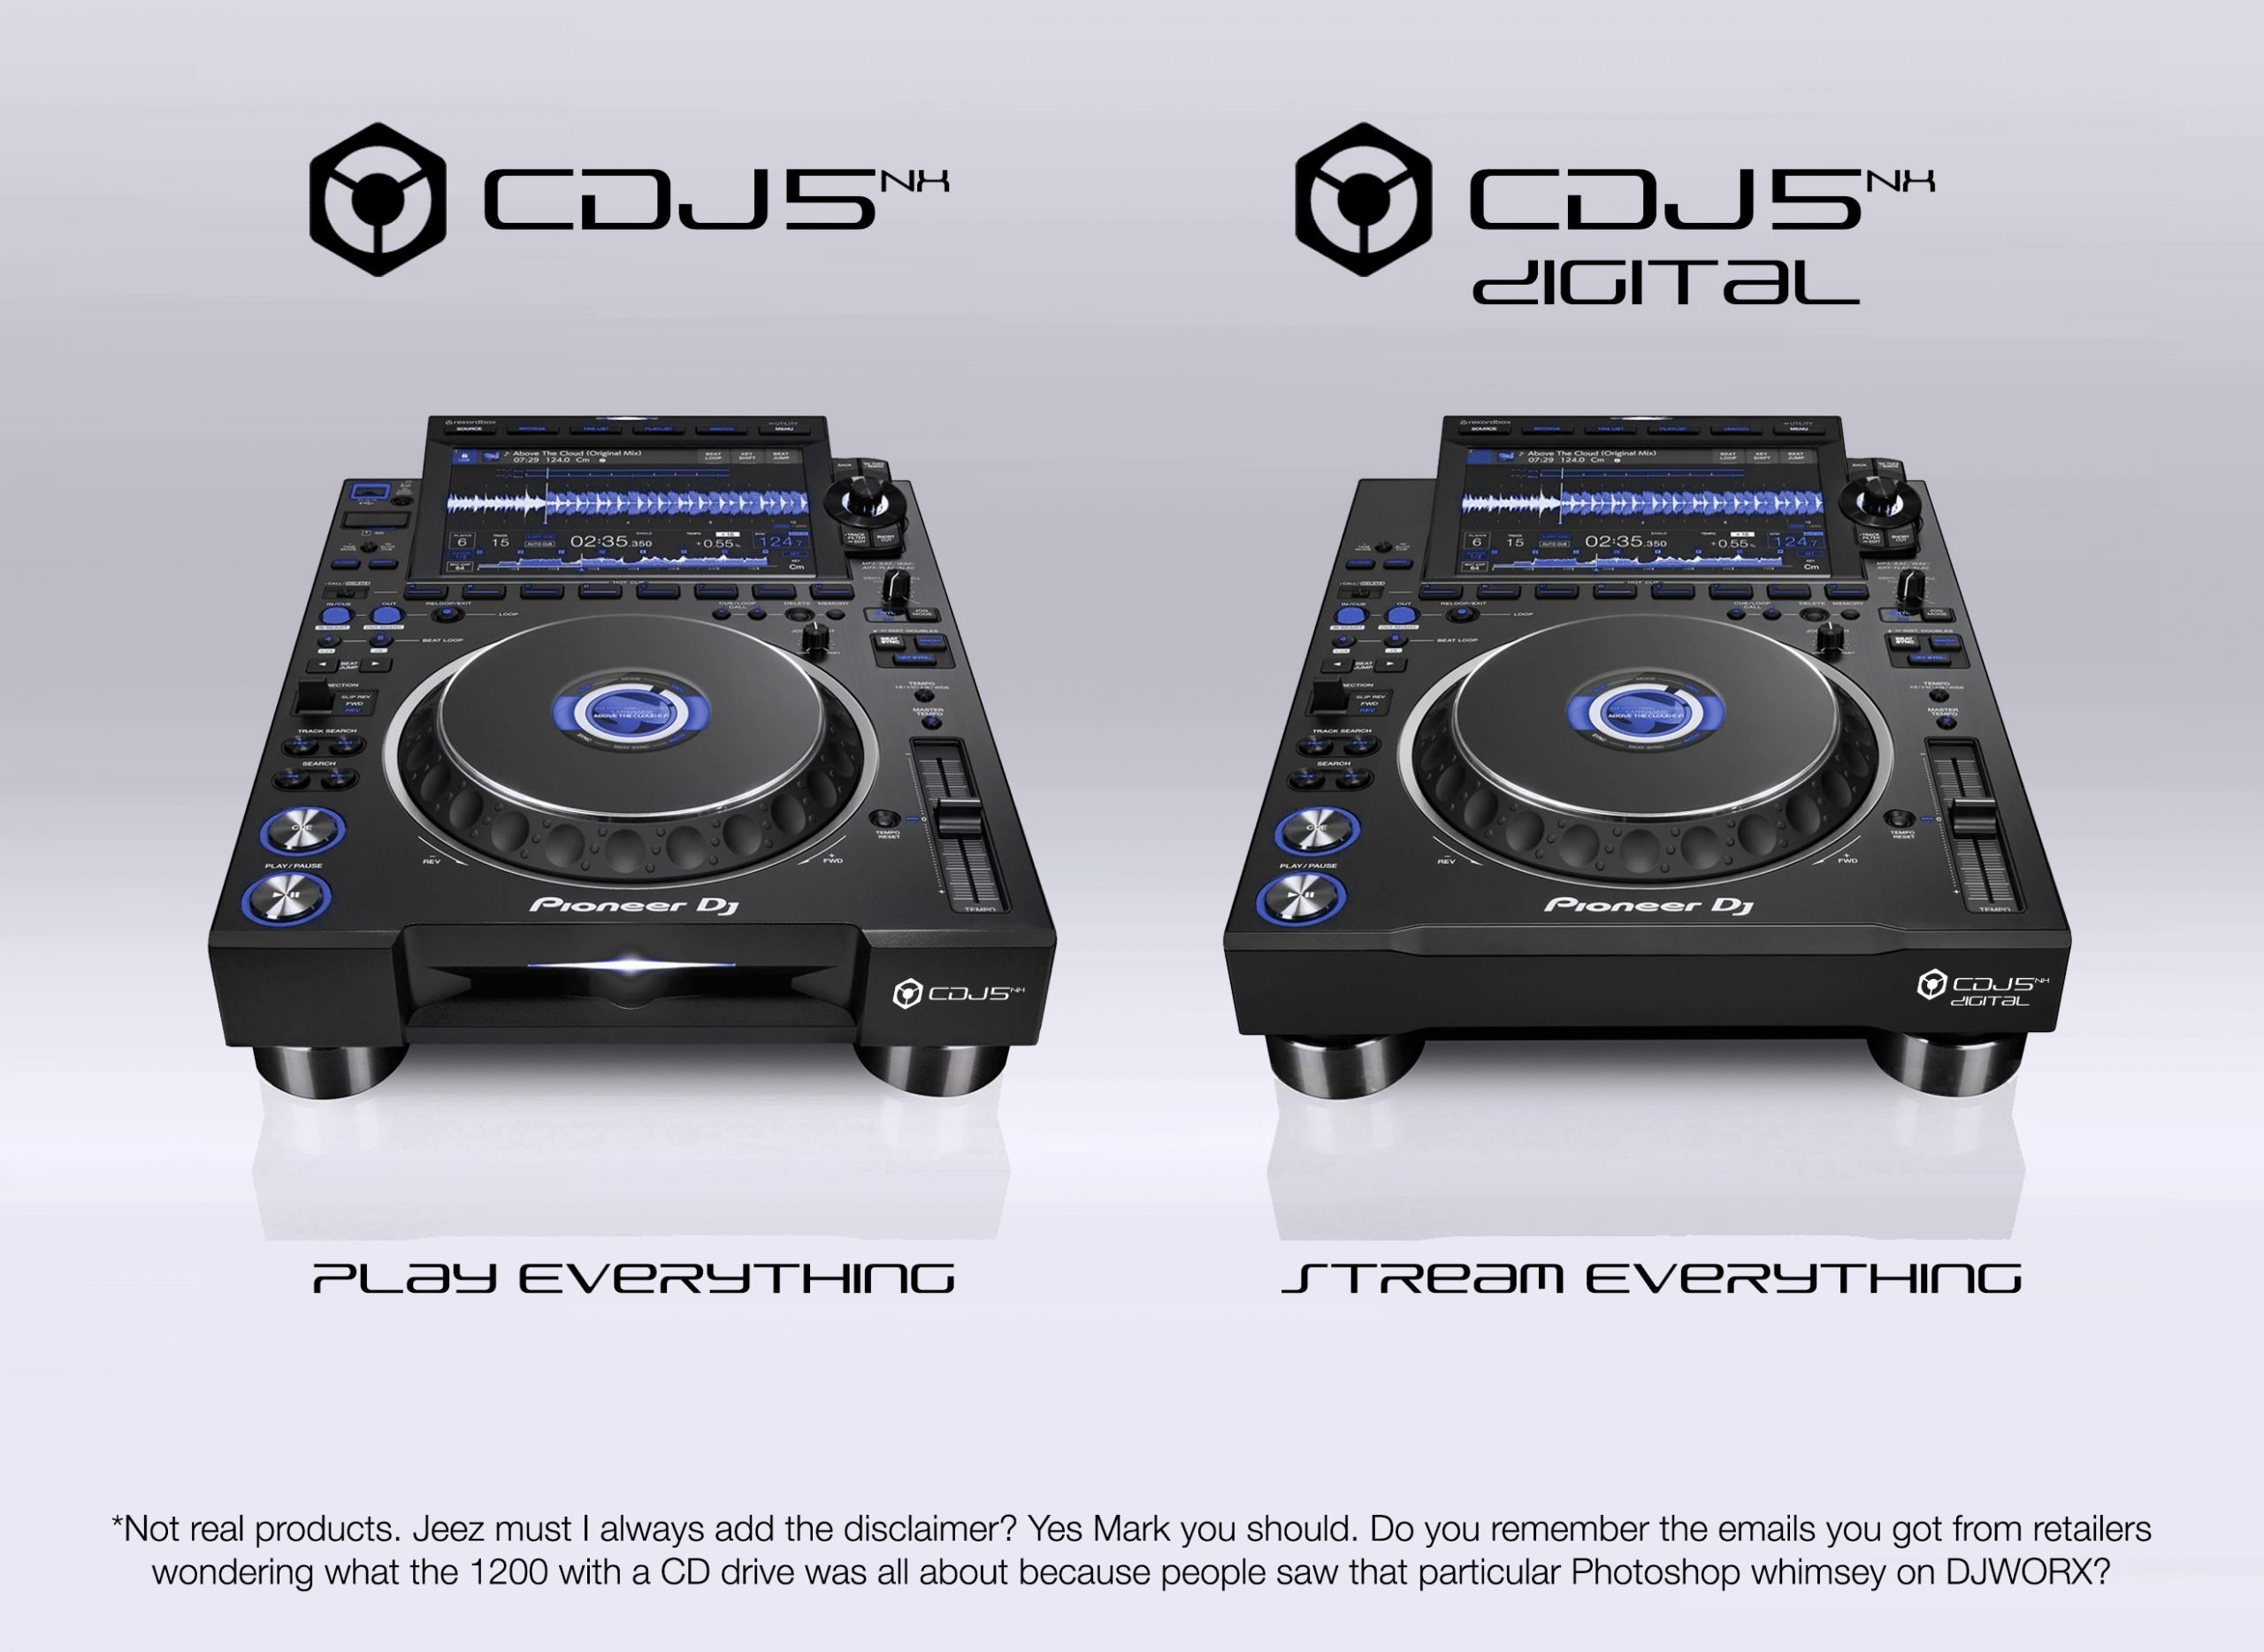 The PS5 and the possibility of streaming only DJ gear 4